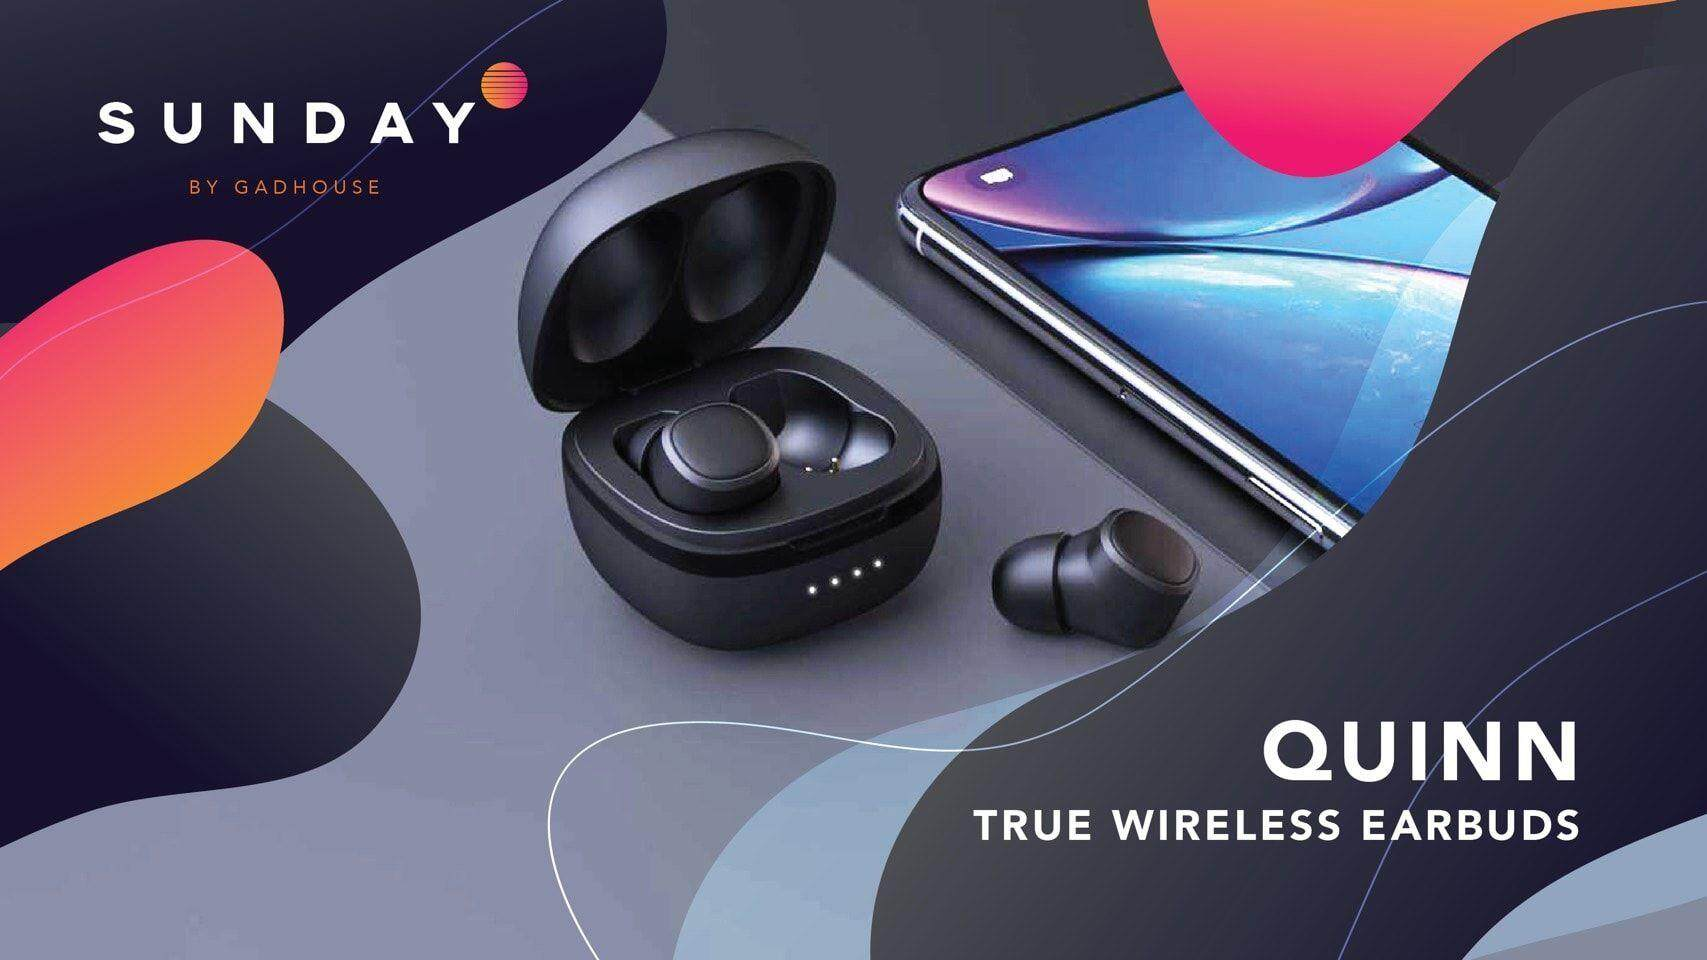 9f6b293302d Gadhouse Quinn True Wireless Earbuds หูฟังไร้สาย,หูฟังwireless